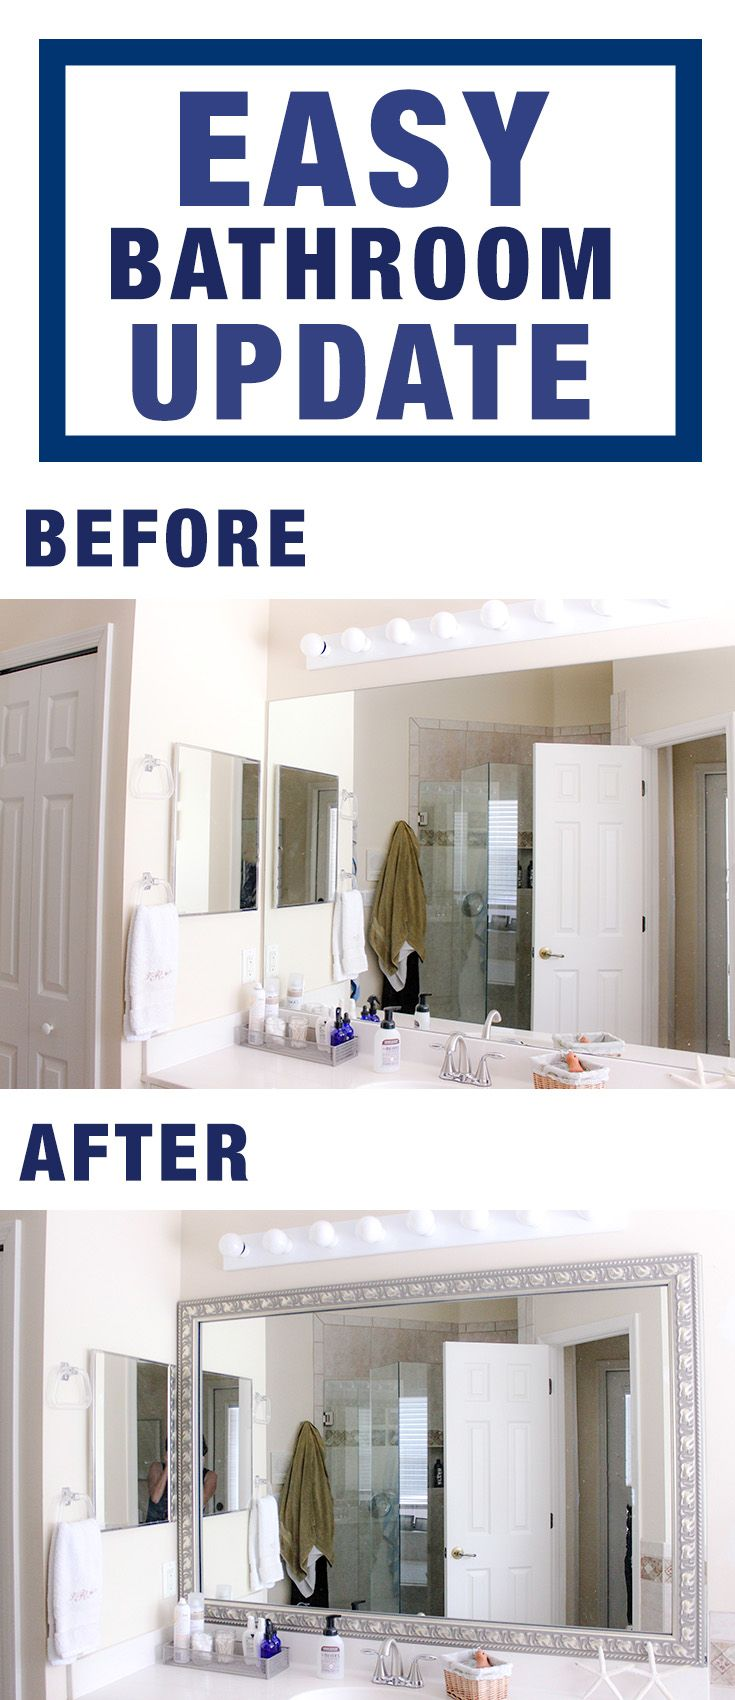 Easy bathroom update with diy mirror frame kit from frame